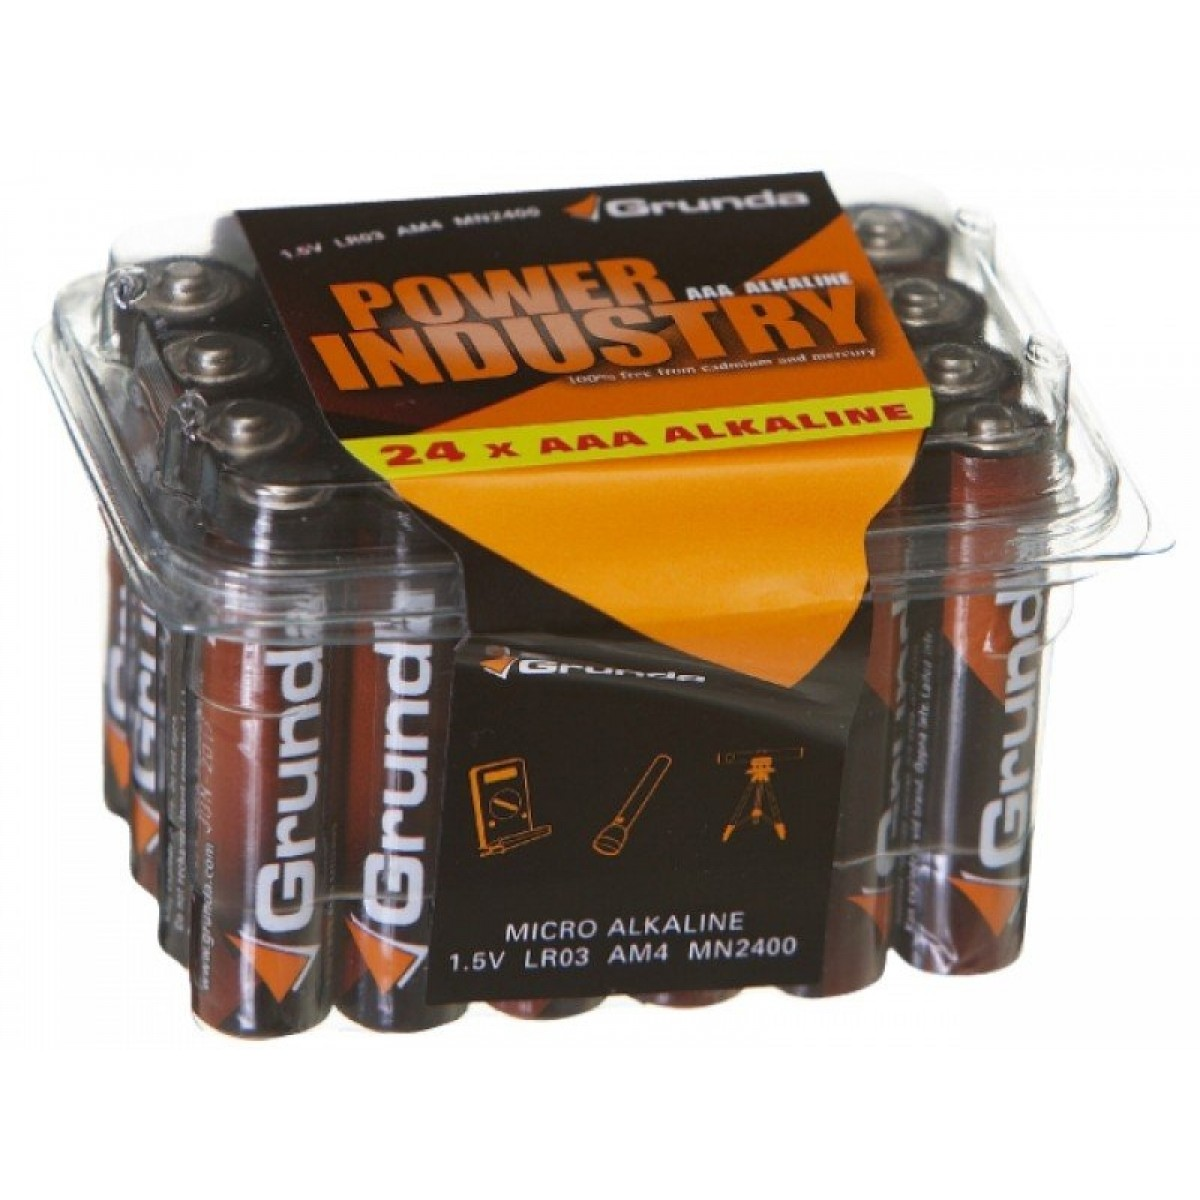 Grunda Power Batteri 24 stk Alkaline AAA-31